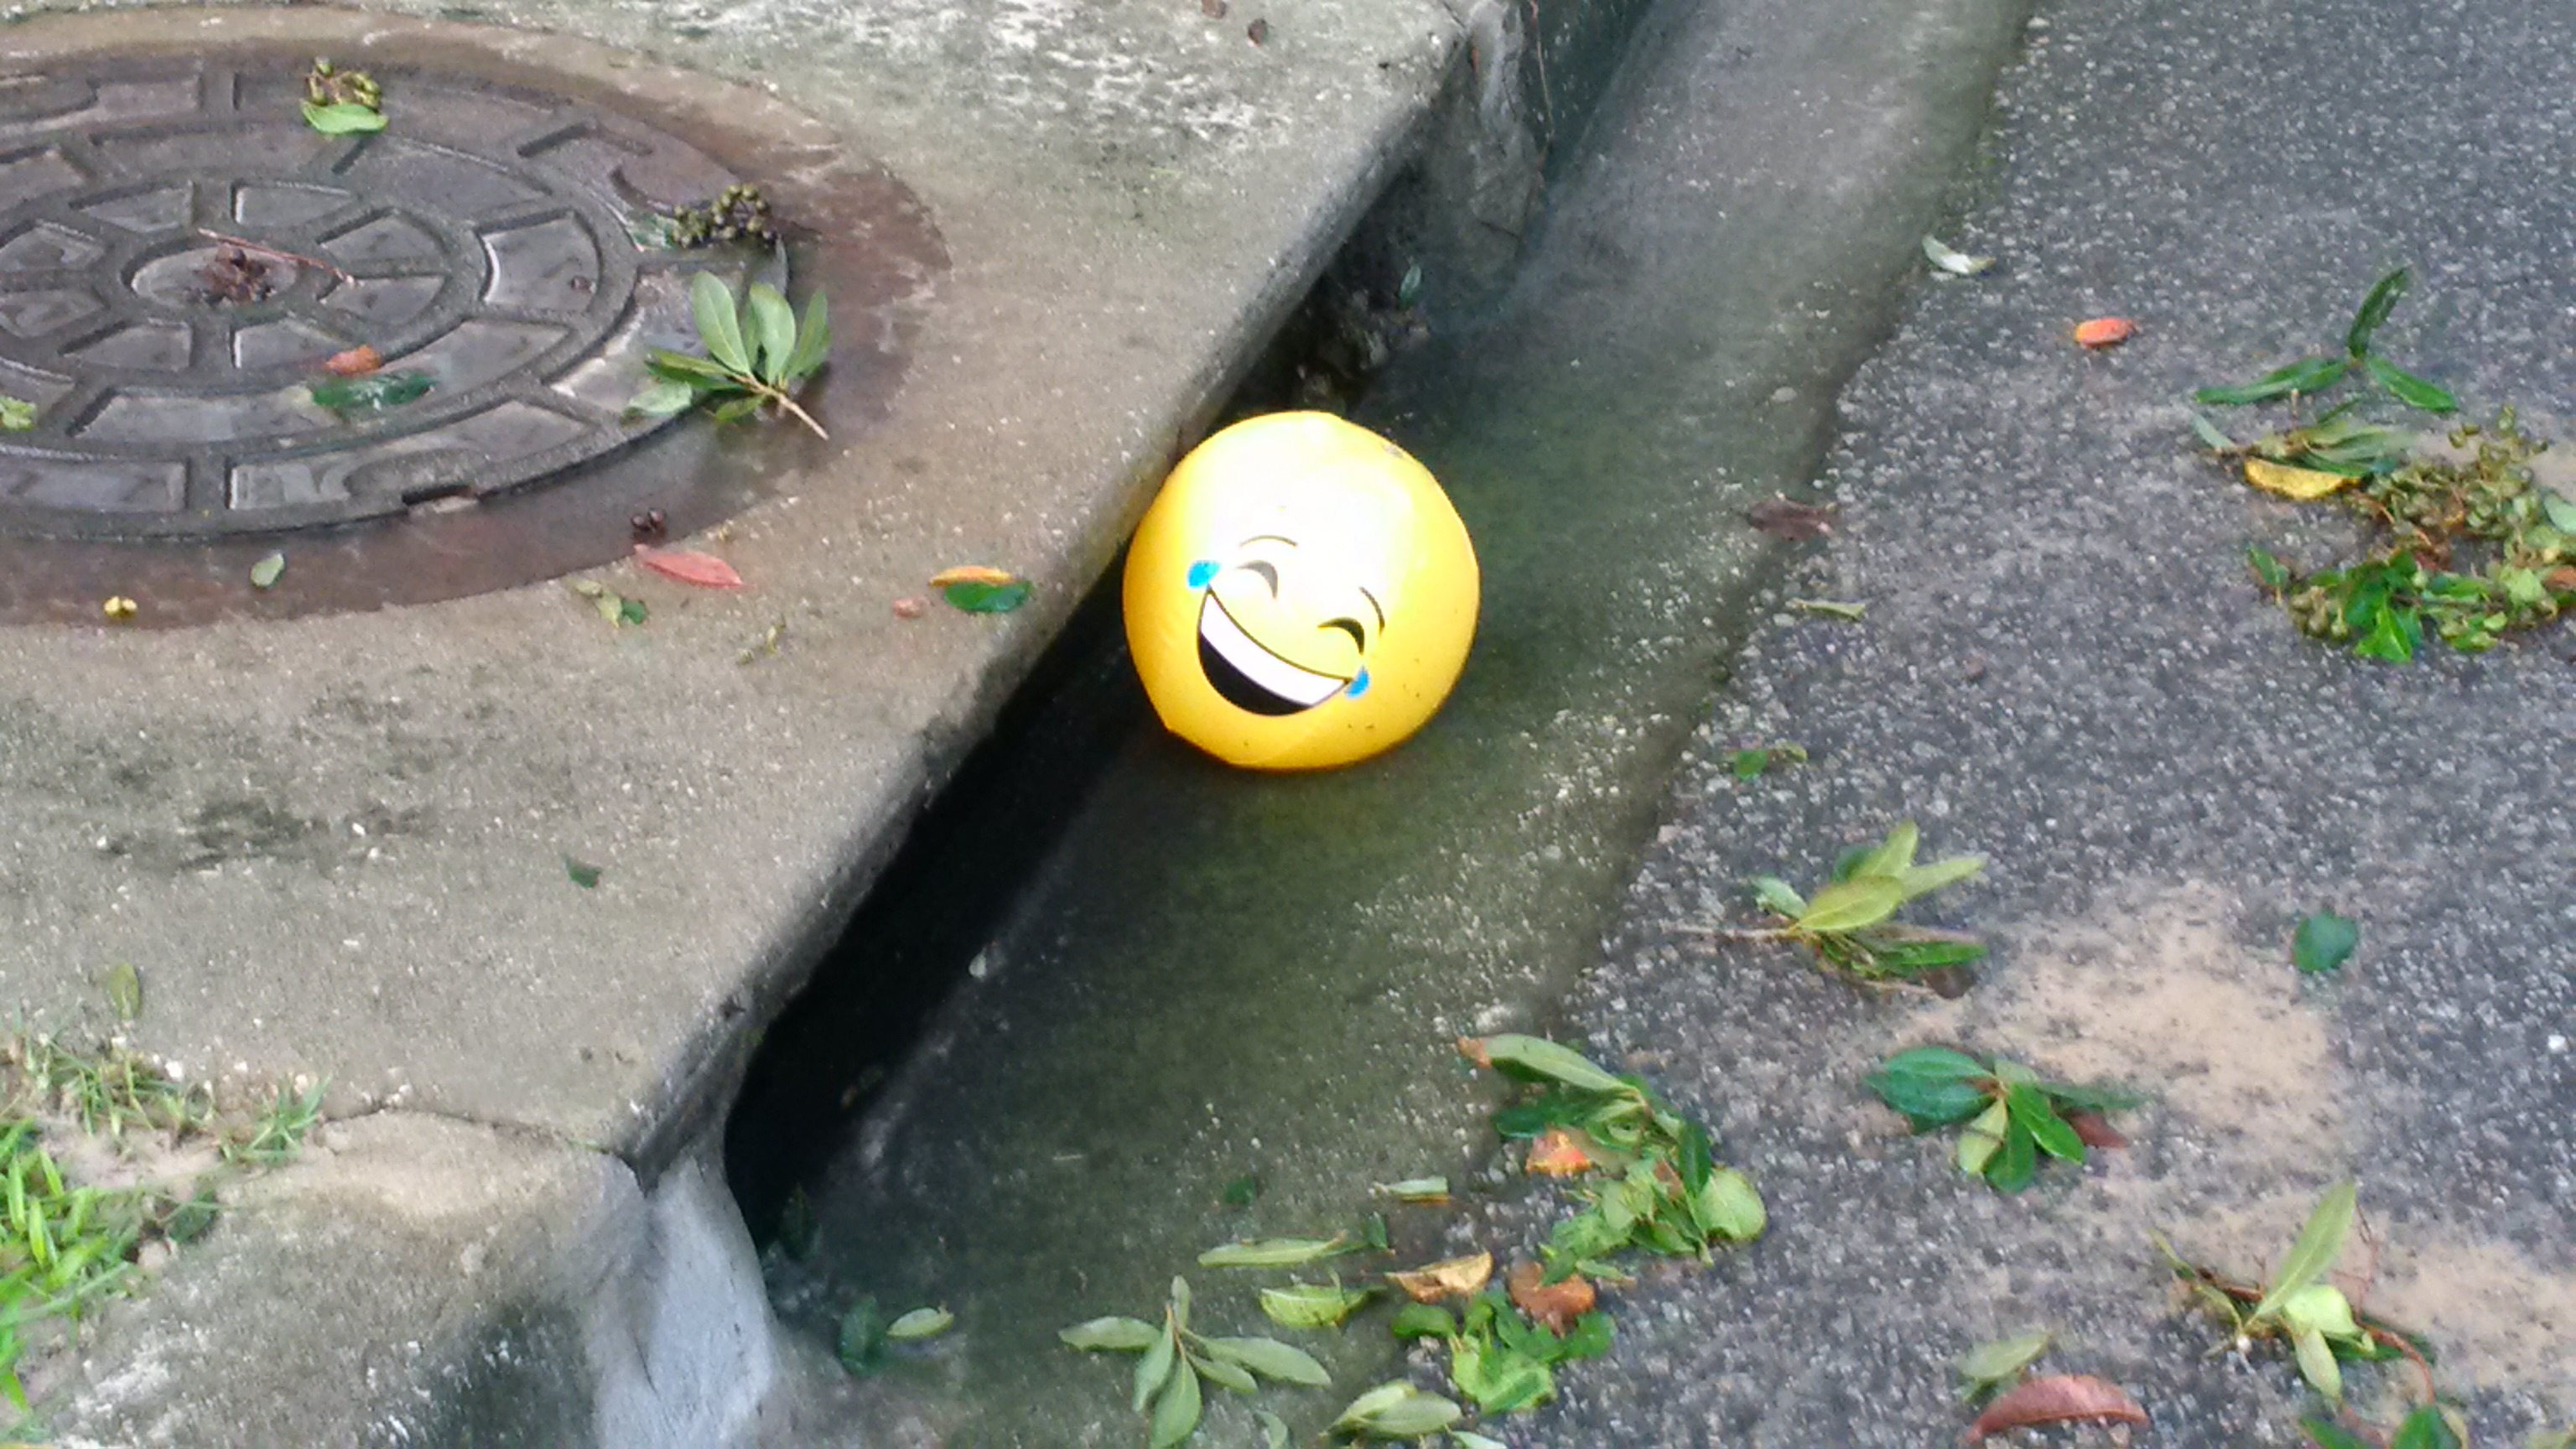 Hurray – Irma is gone! This smiling ball ended up in a storm drain on Jenny's Street the morning after the hurricane.